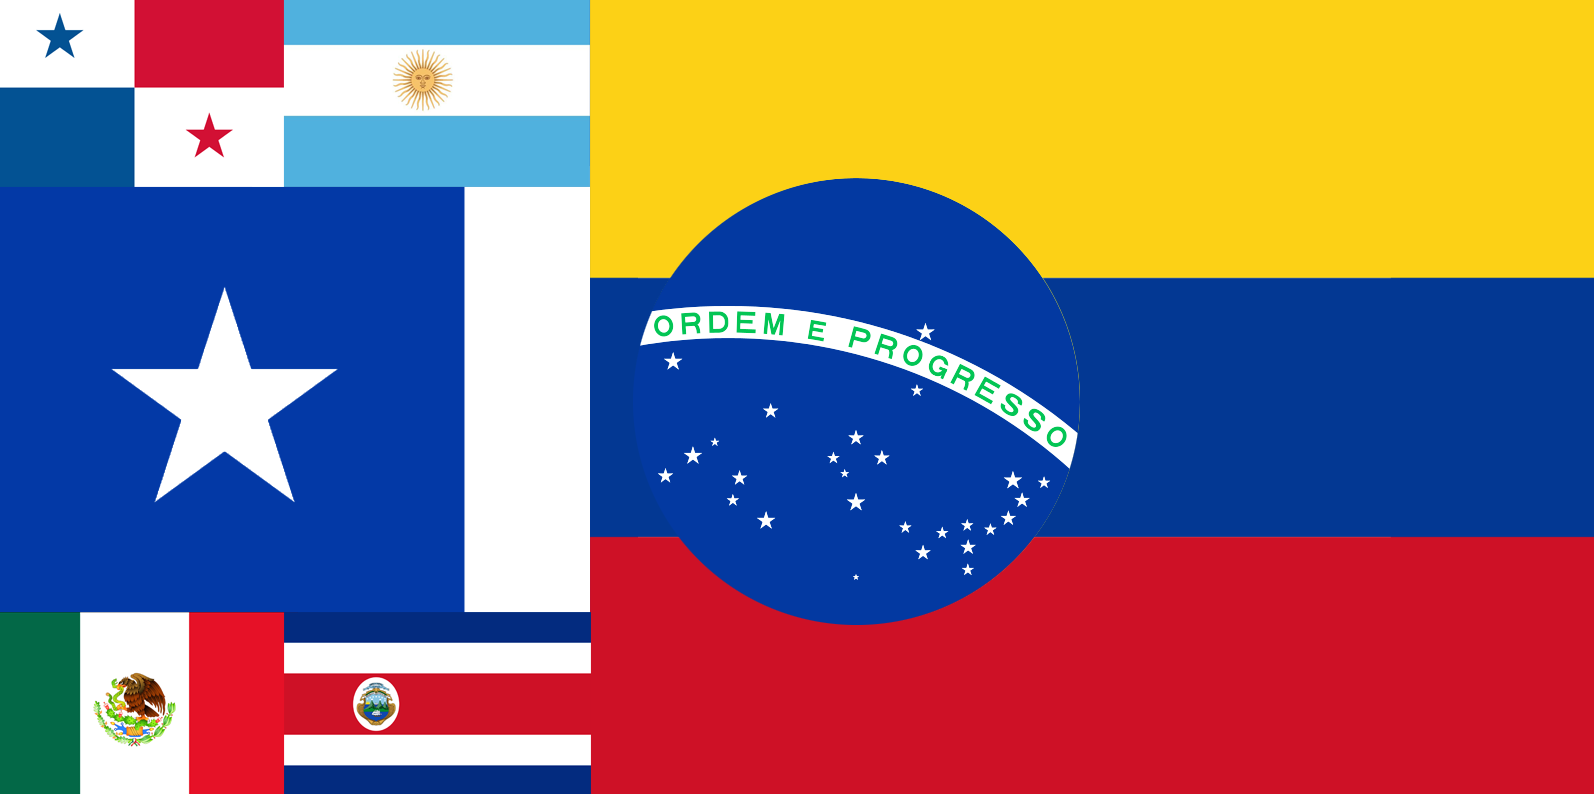 Latin Flags